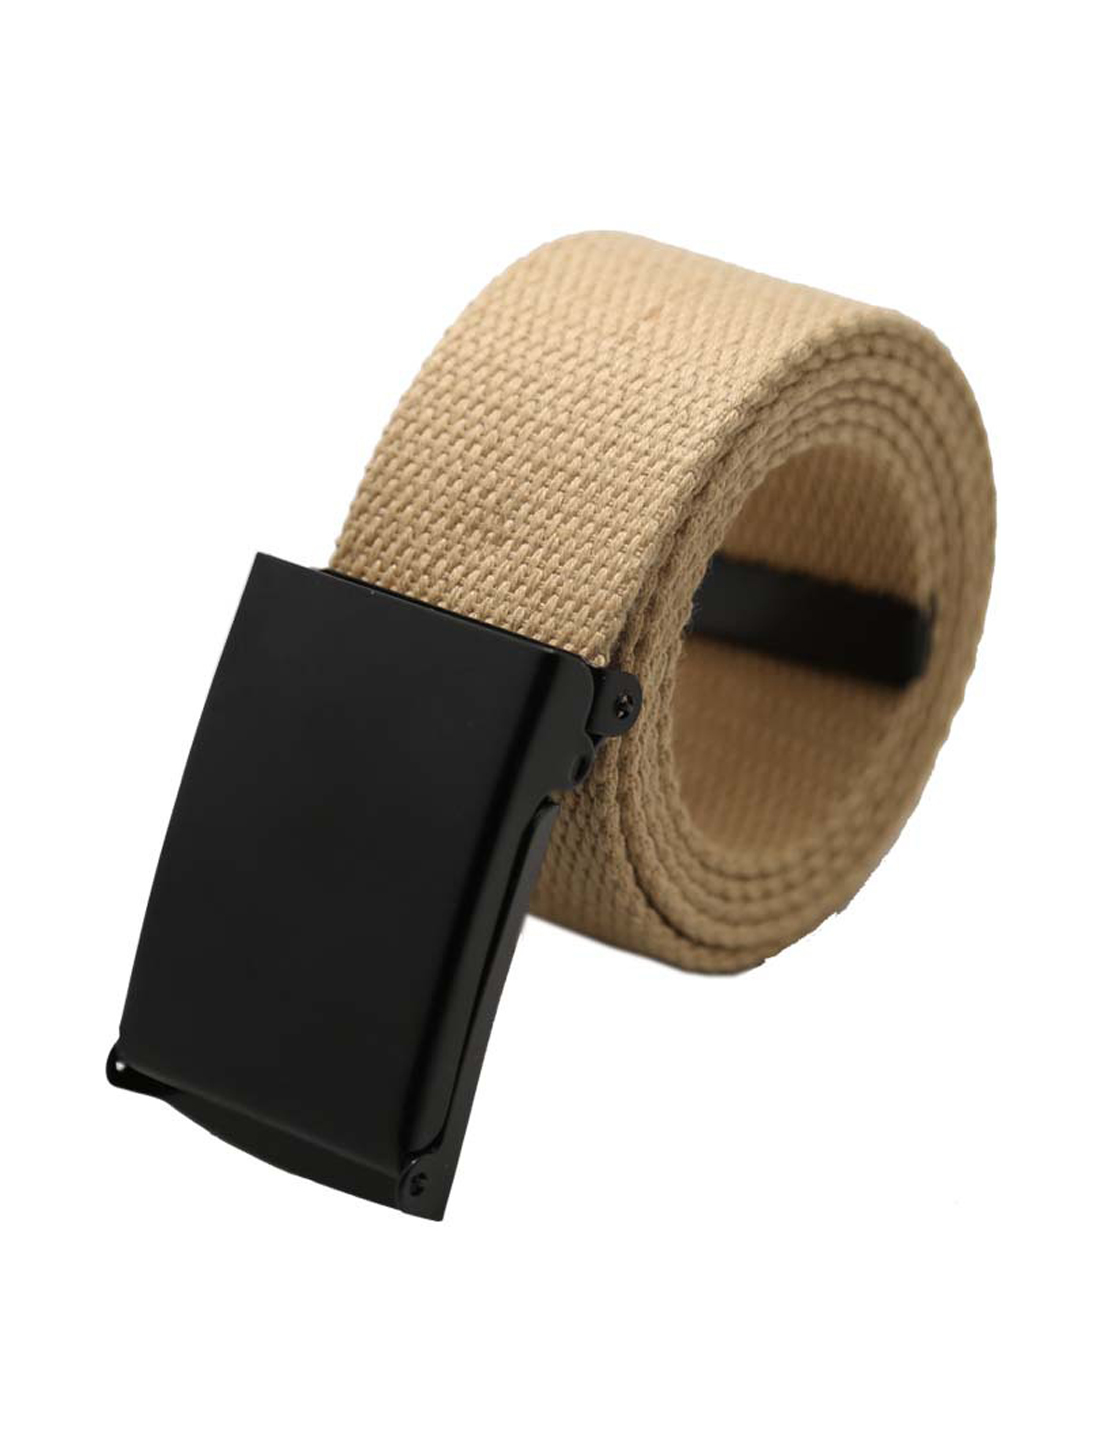 "Unisex Canvas No Hole Slide Buckle Waist Belt Width 1 5/8"" Beige"